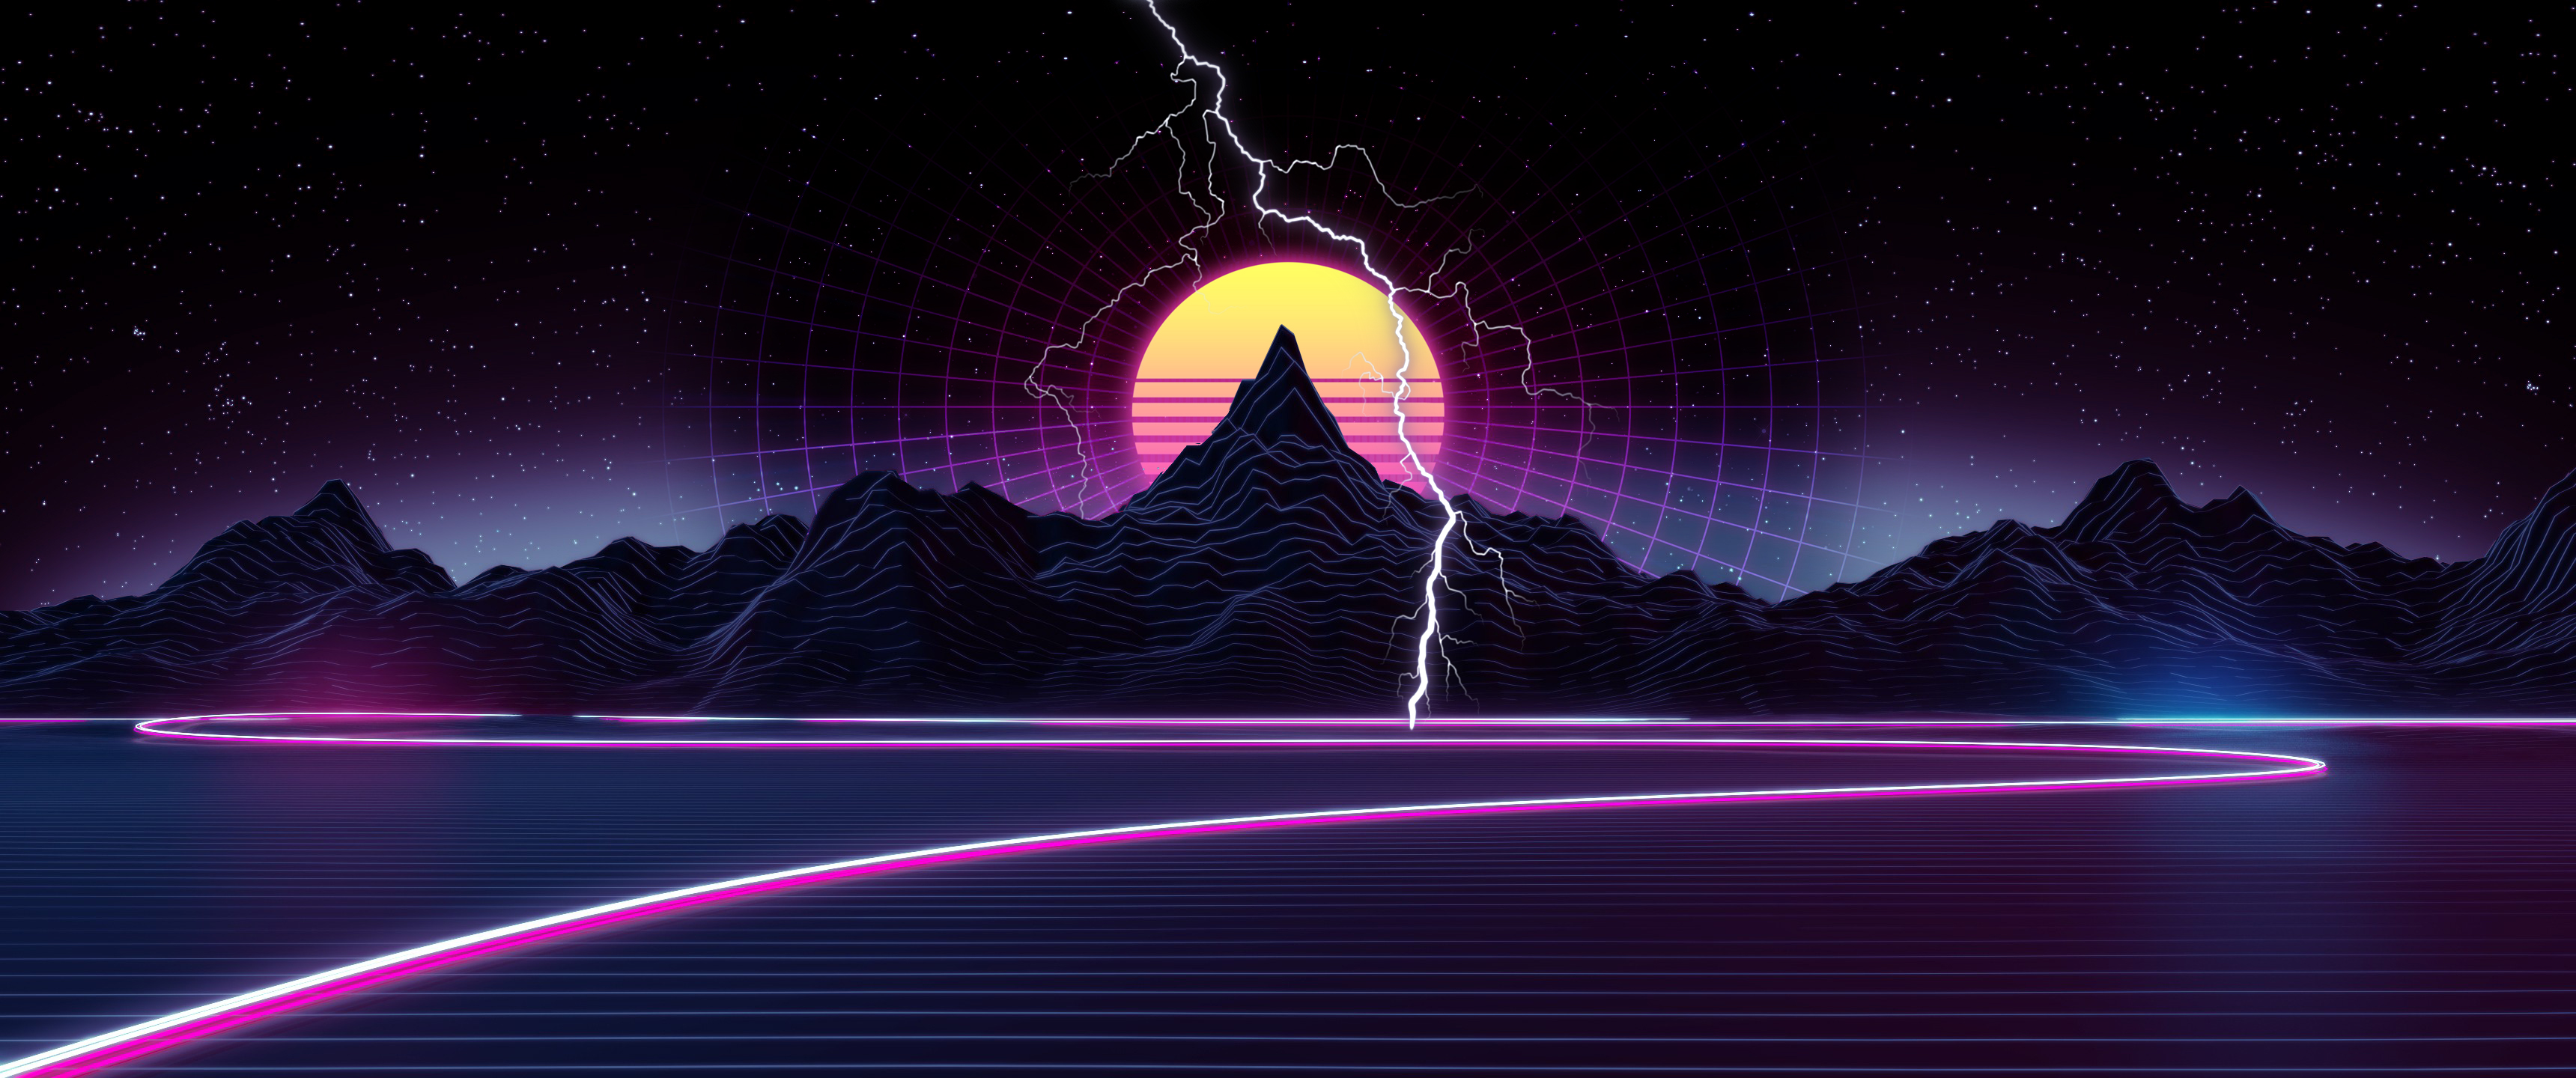 1440p Wallpapers Wide 3440 Ultra